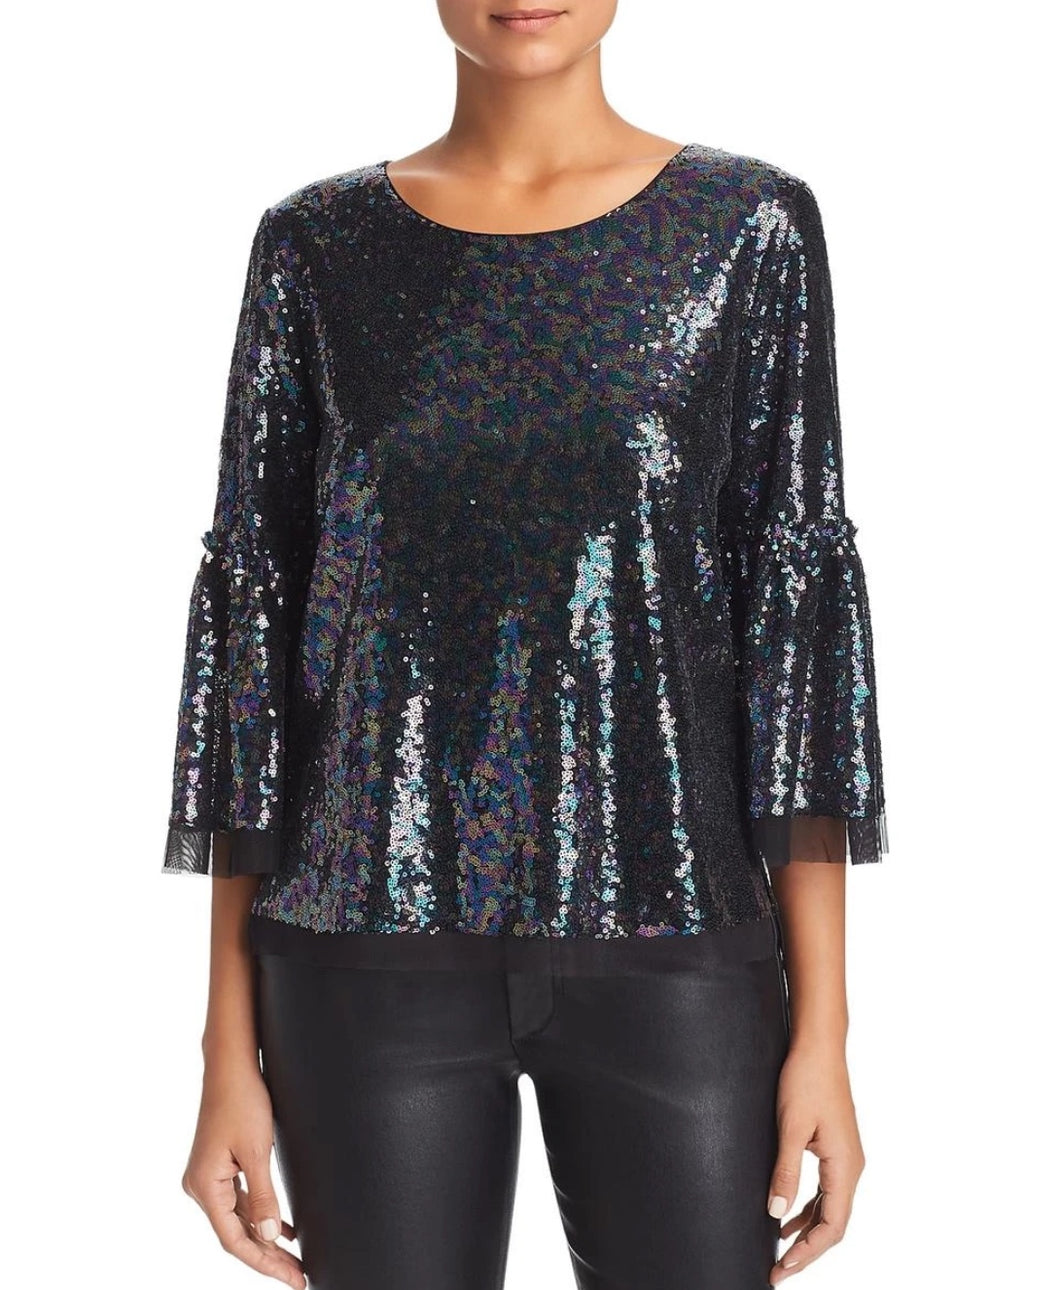 Le Gali Womens Blouse sz M Black Janella Metallic Sequin Boat Neck Top NWT $139